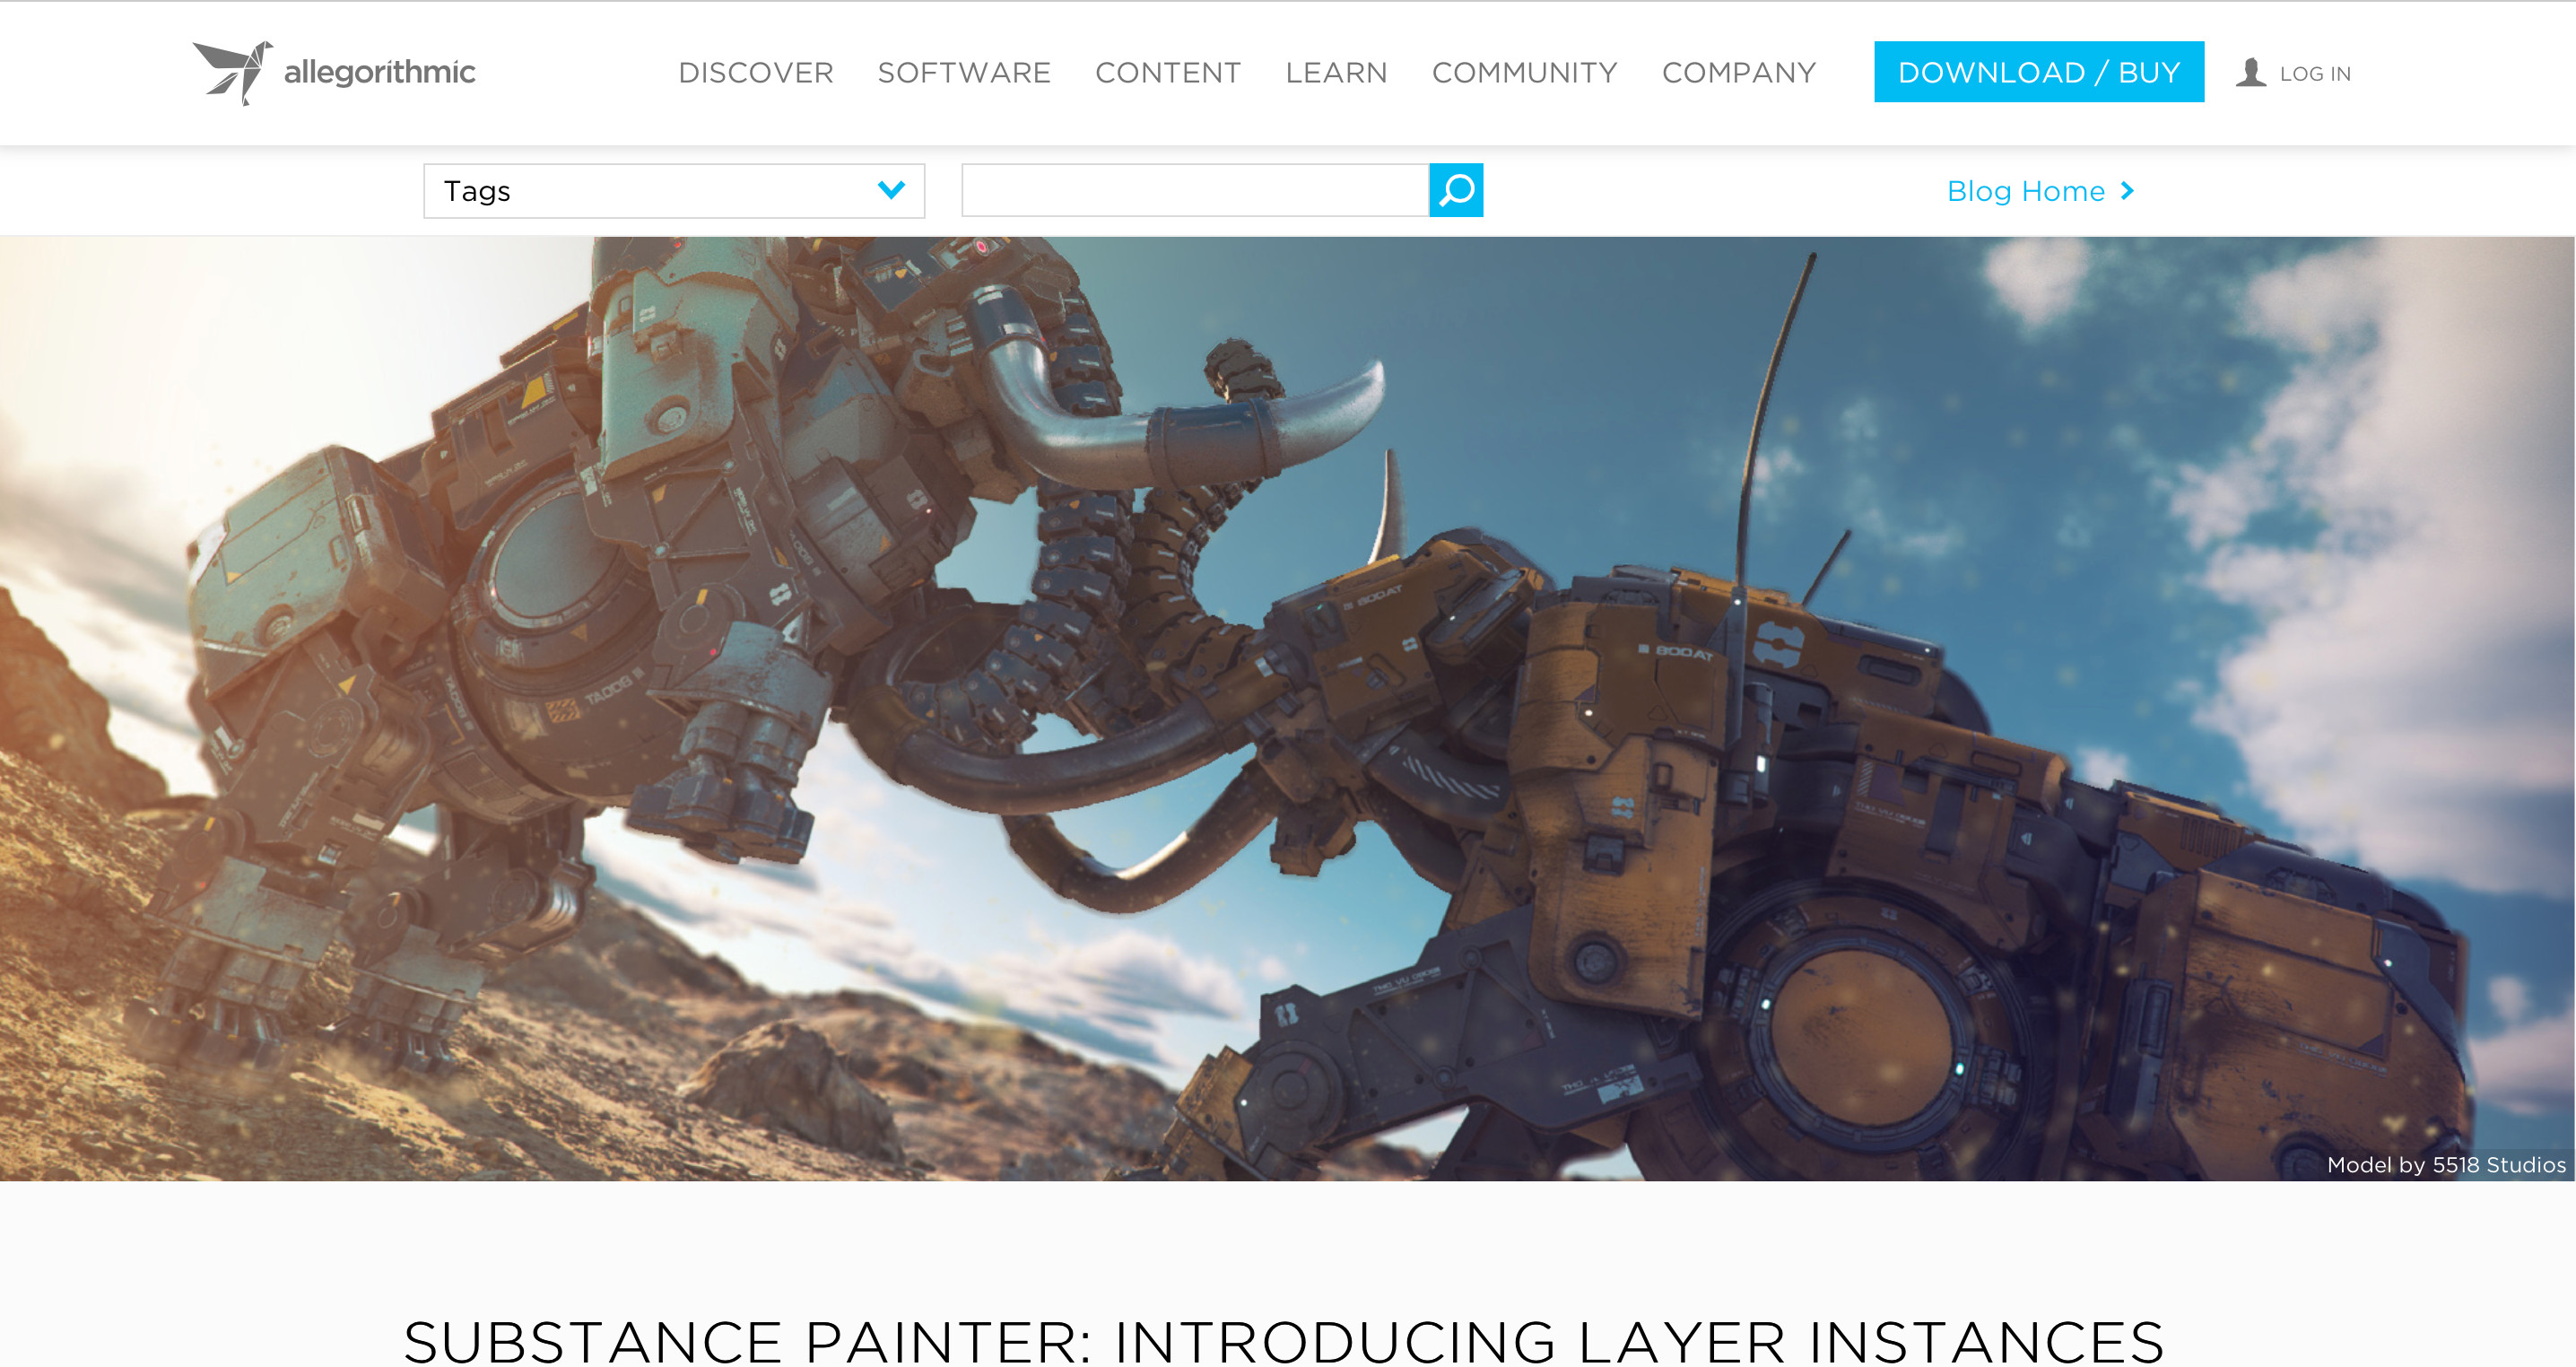 Promo : SUBSTANCE PAINTER: INTRODUCING LAYER INSTANCES